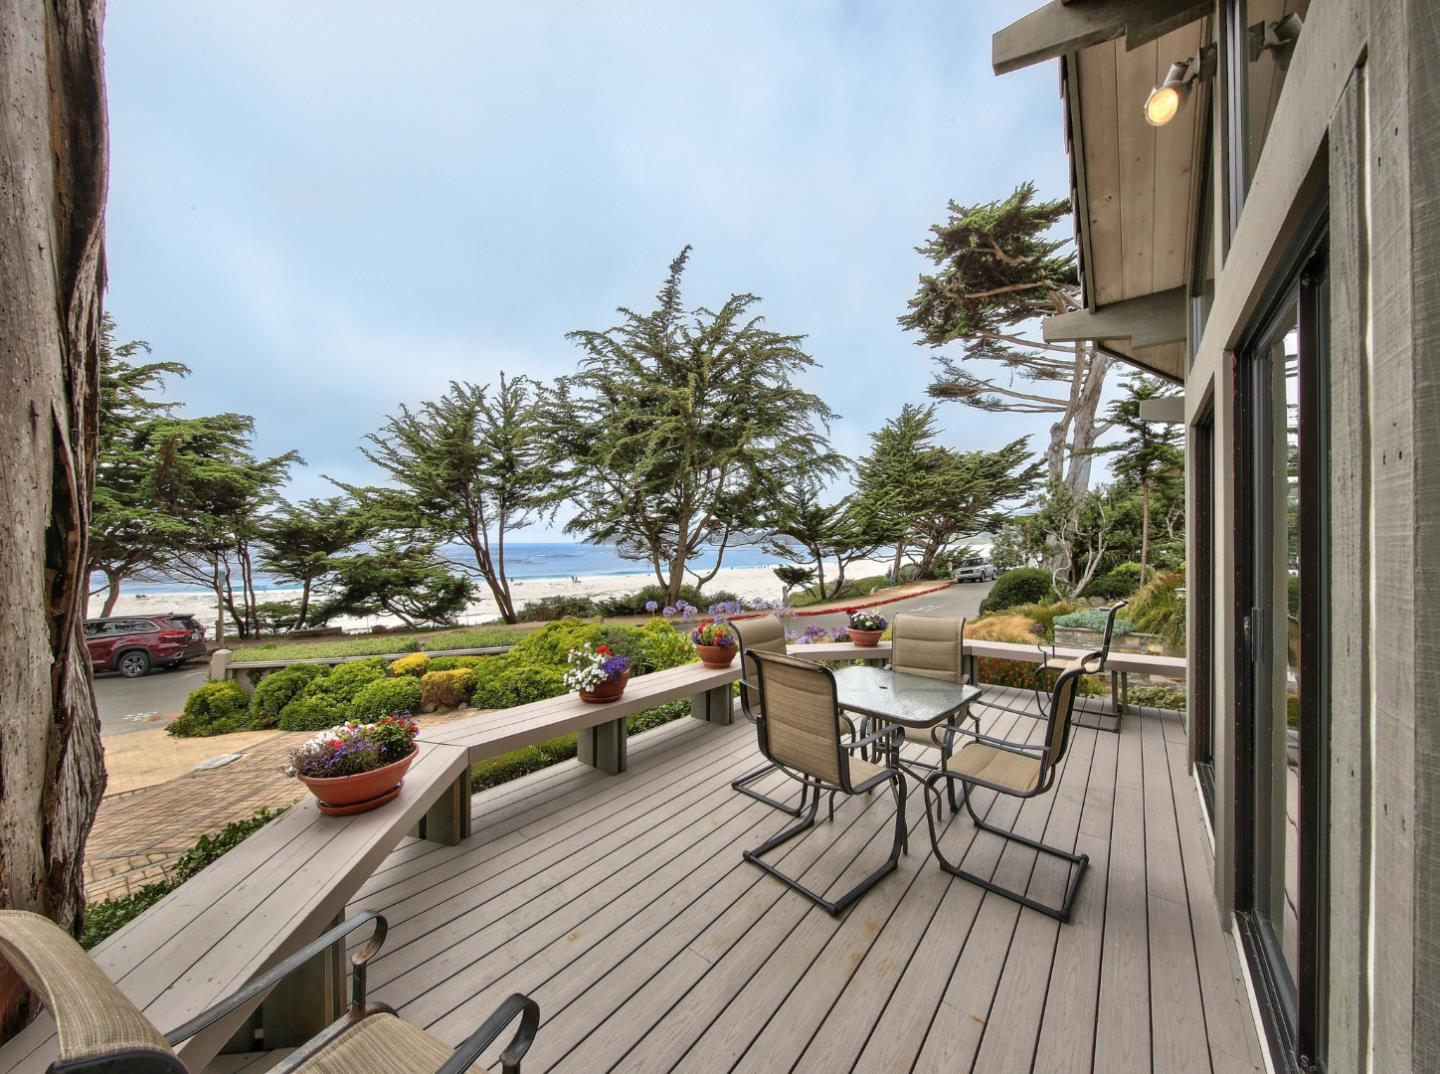 Property for sale at 0 Scenic 4 SE 13th, Carmel,  CA 93921